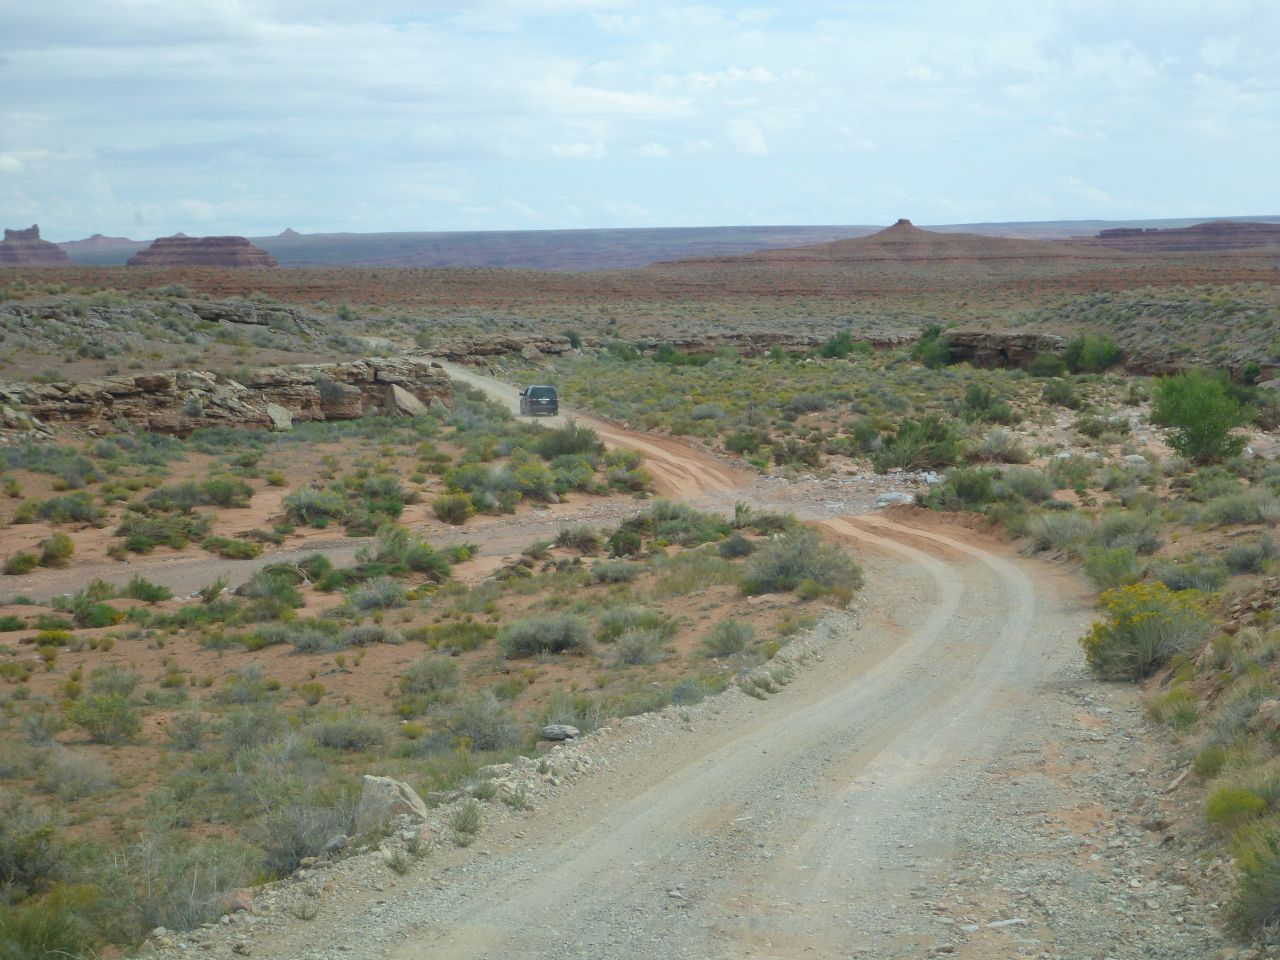 Typical Road Conditions Through Valley of the Gods